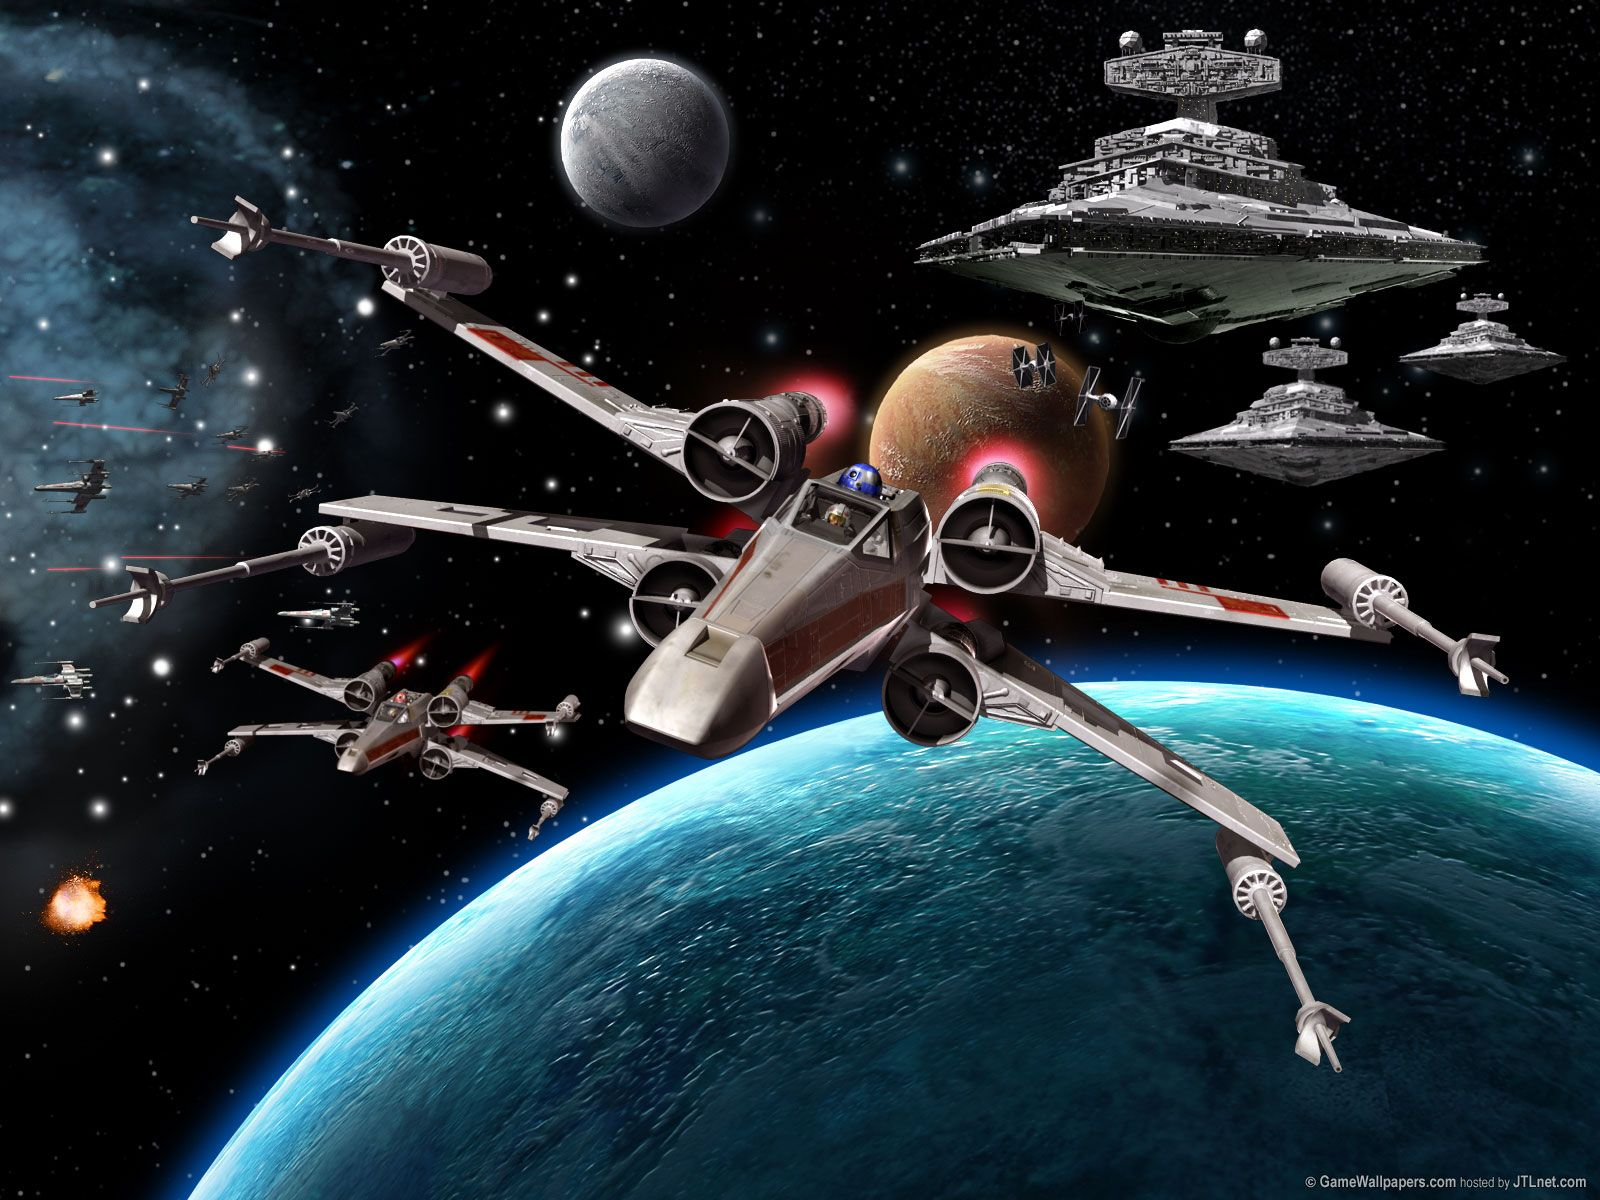 Star Wars Space Battle Wallpaper Wallpapers 2020 Check More At